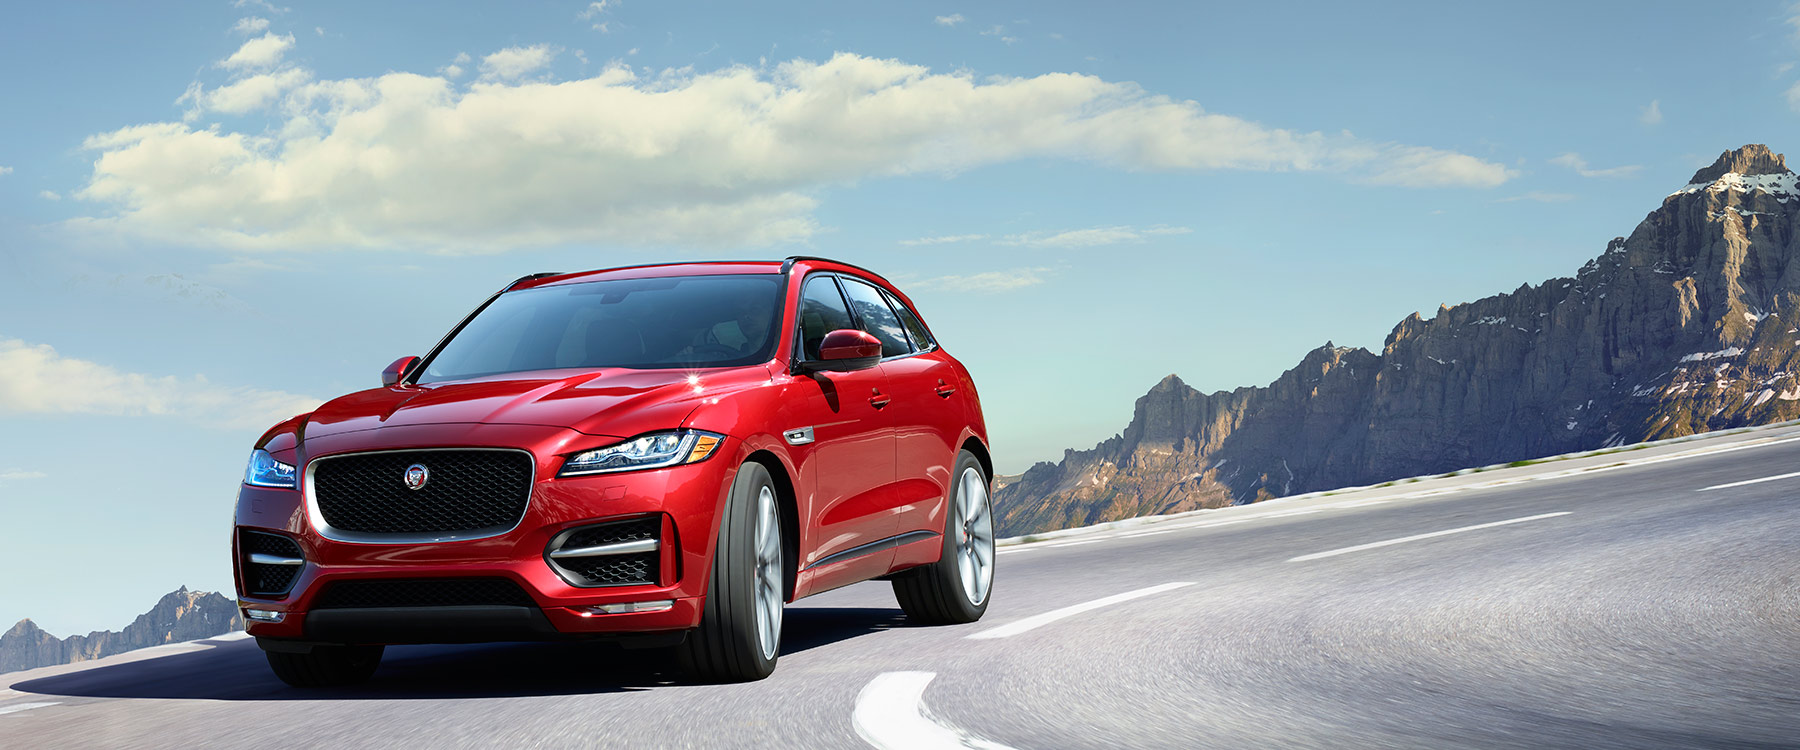 2017 Jaguar F-Pace Header